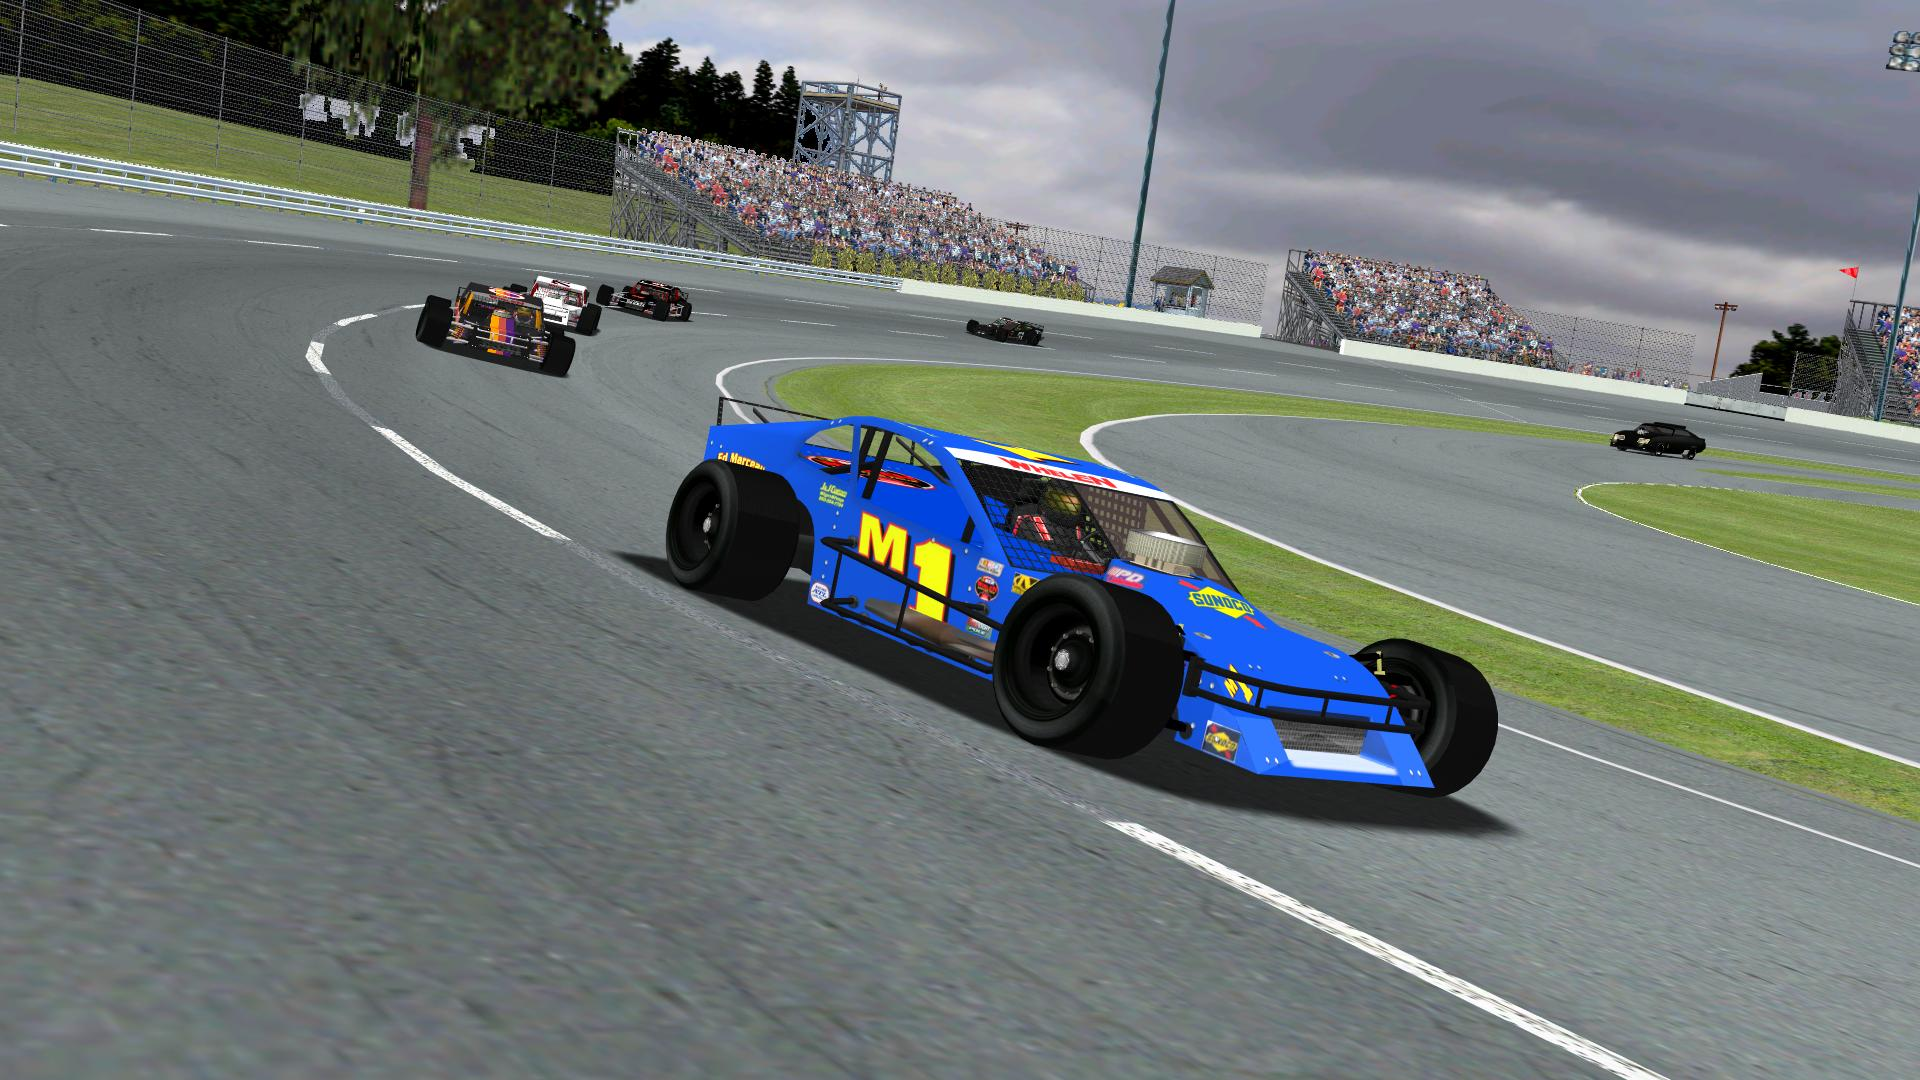 Rookiesrock leading the field through turns 1 & 2 after a late restart. (NHMA)